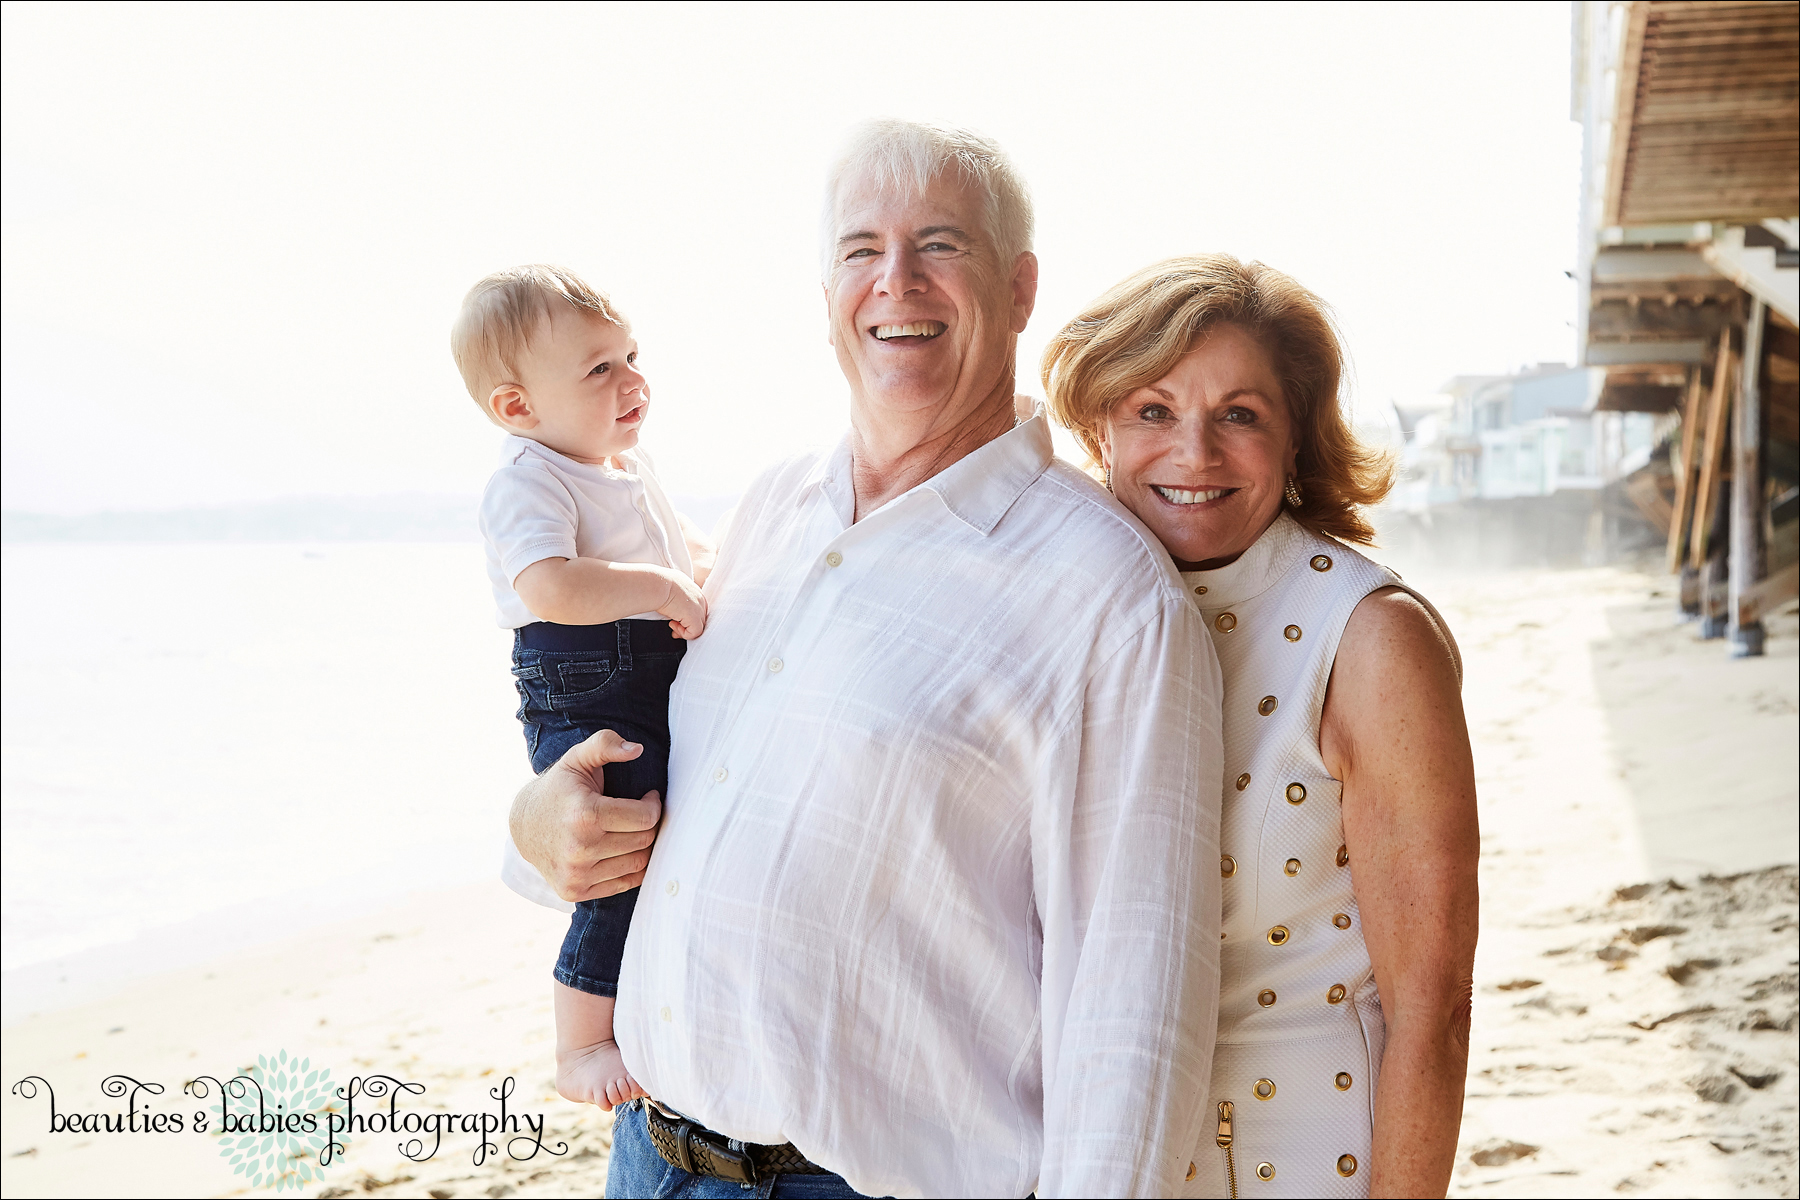 Beach family portrait and lifestyle photography Los Angeles professional photographer